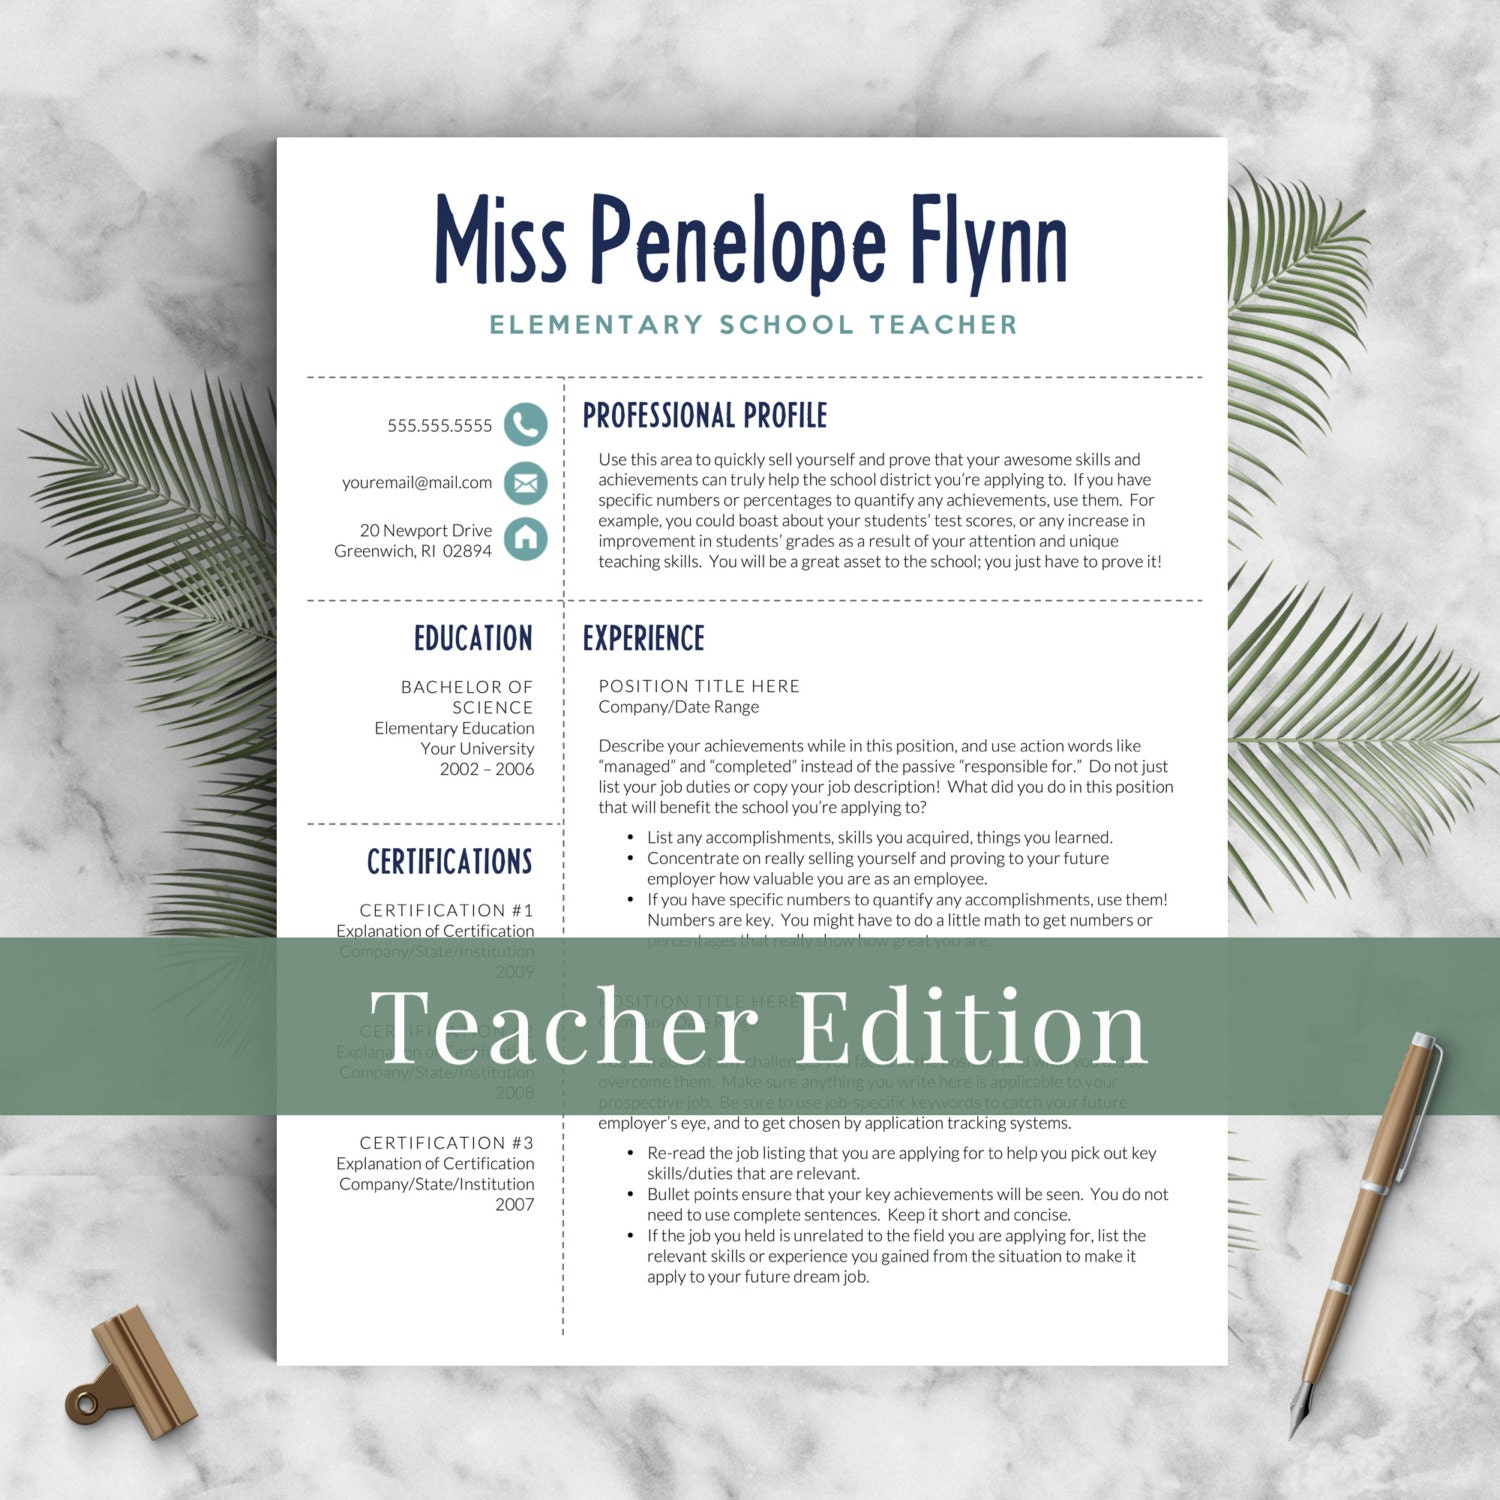 Great 10 Envelope Template Tall 1099 Excel Template Solid 2 Column Website Template 2014 Blank Calendar Template Old 2015 Calendars Templates Coloured2015 Resume Keywords Teacher Resume Template For Word \u0026 Pages 1 3 Page Resume For